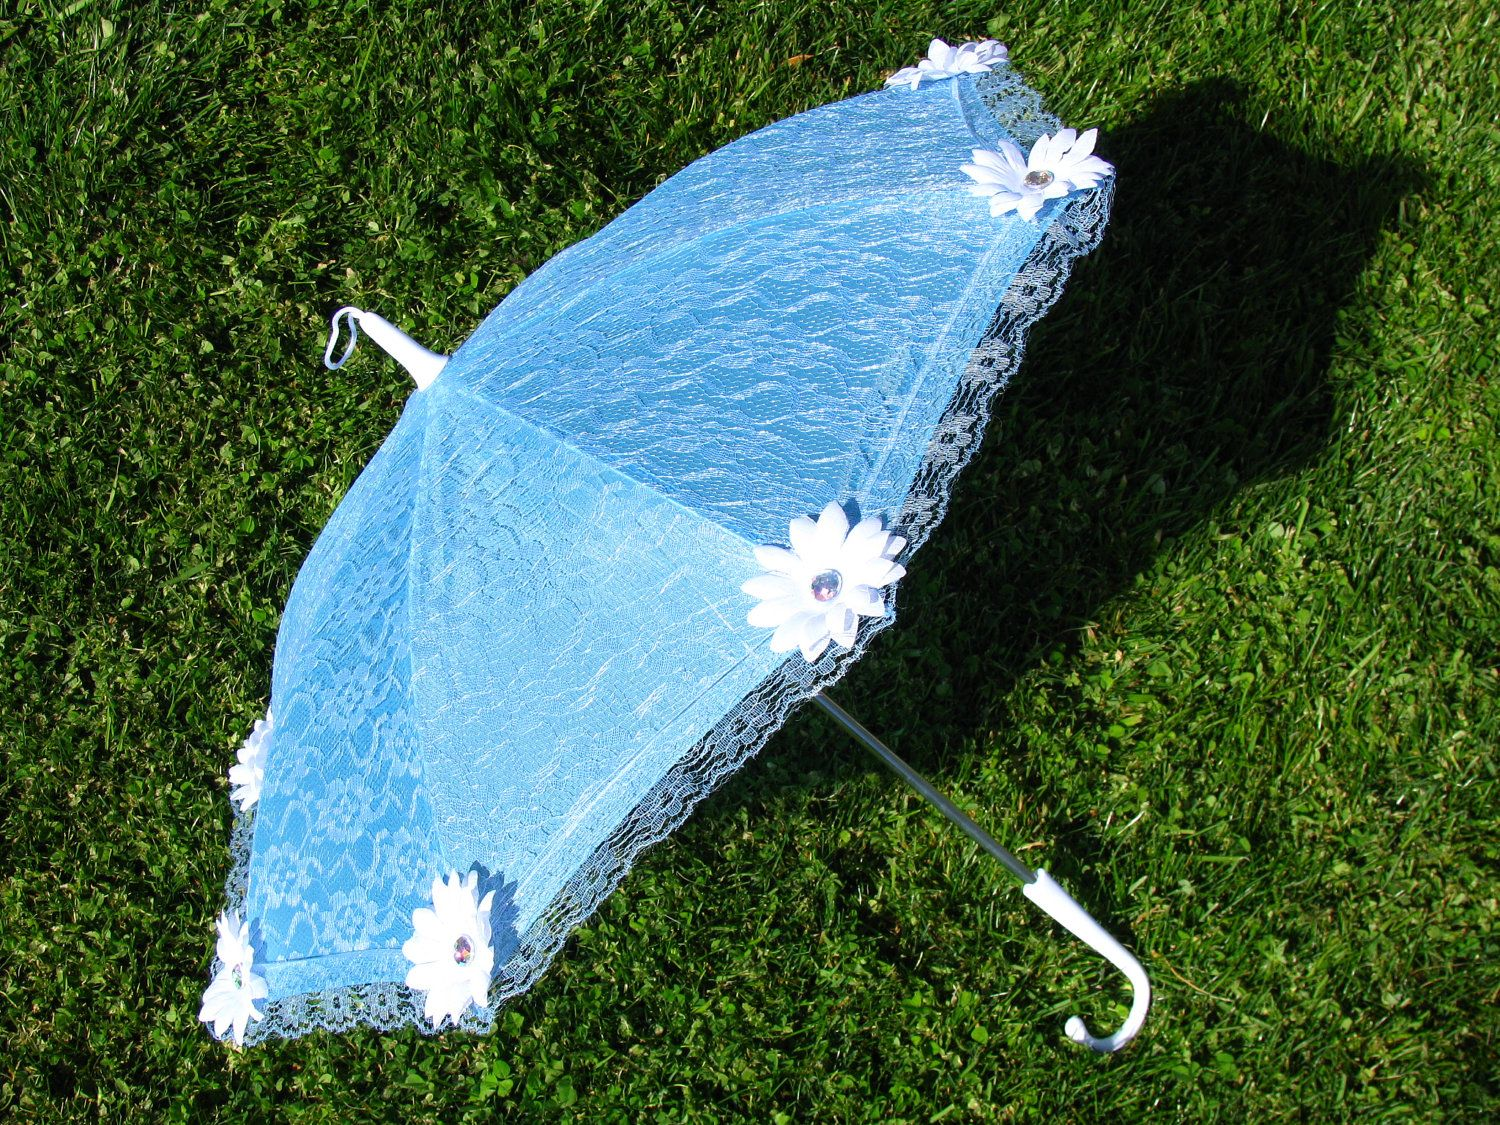 Baby Blue - Lace - White Daisy Sun Umbrella